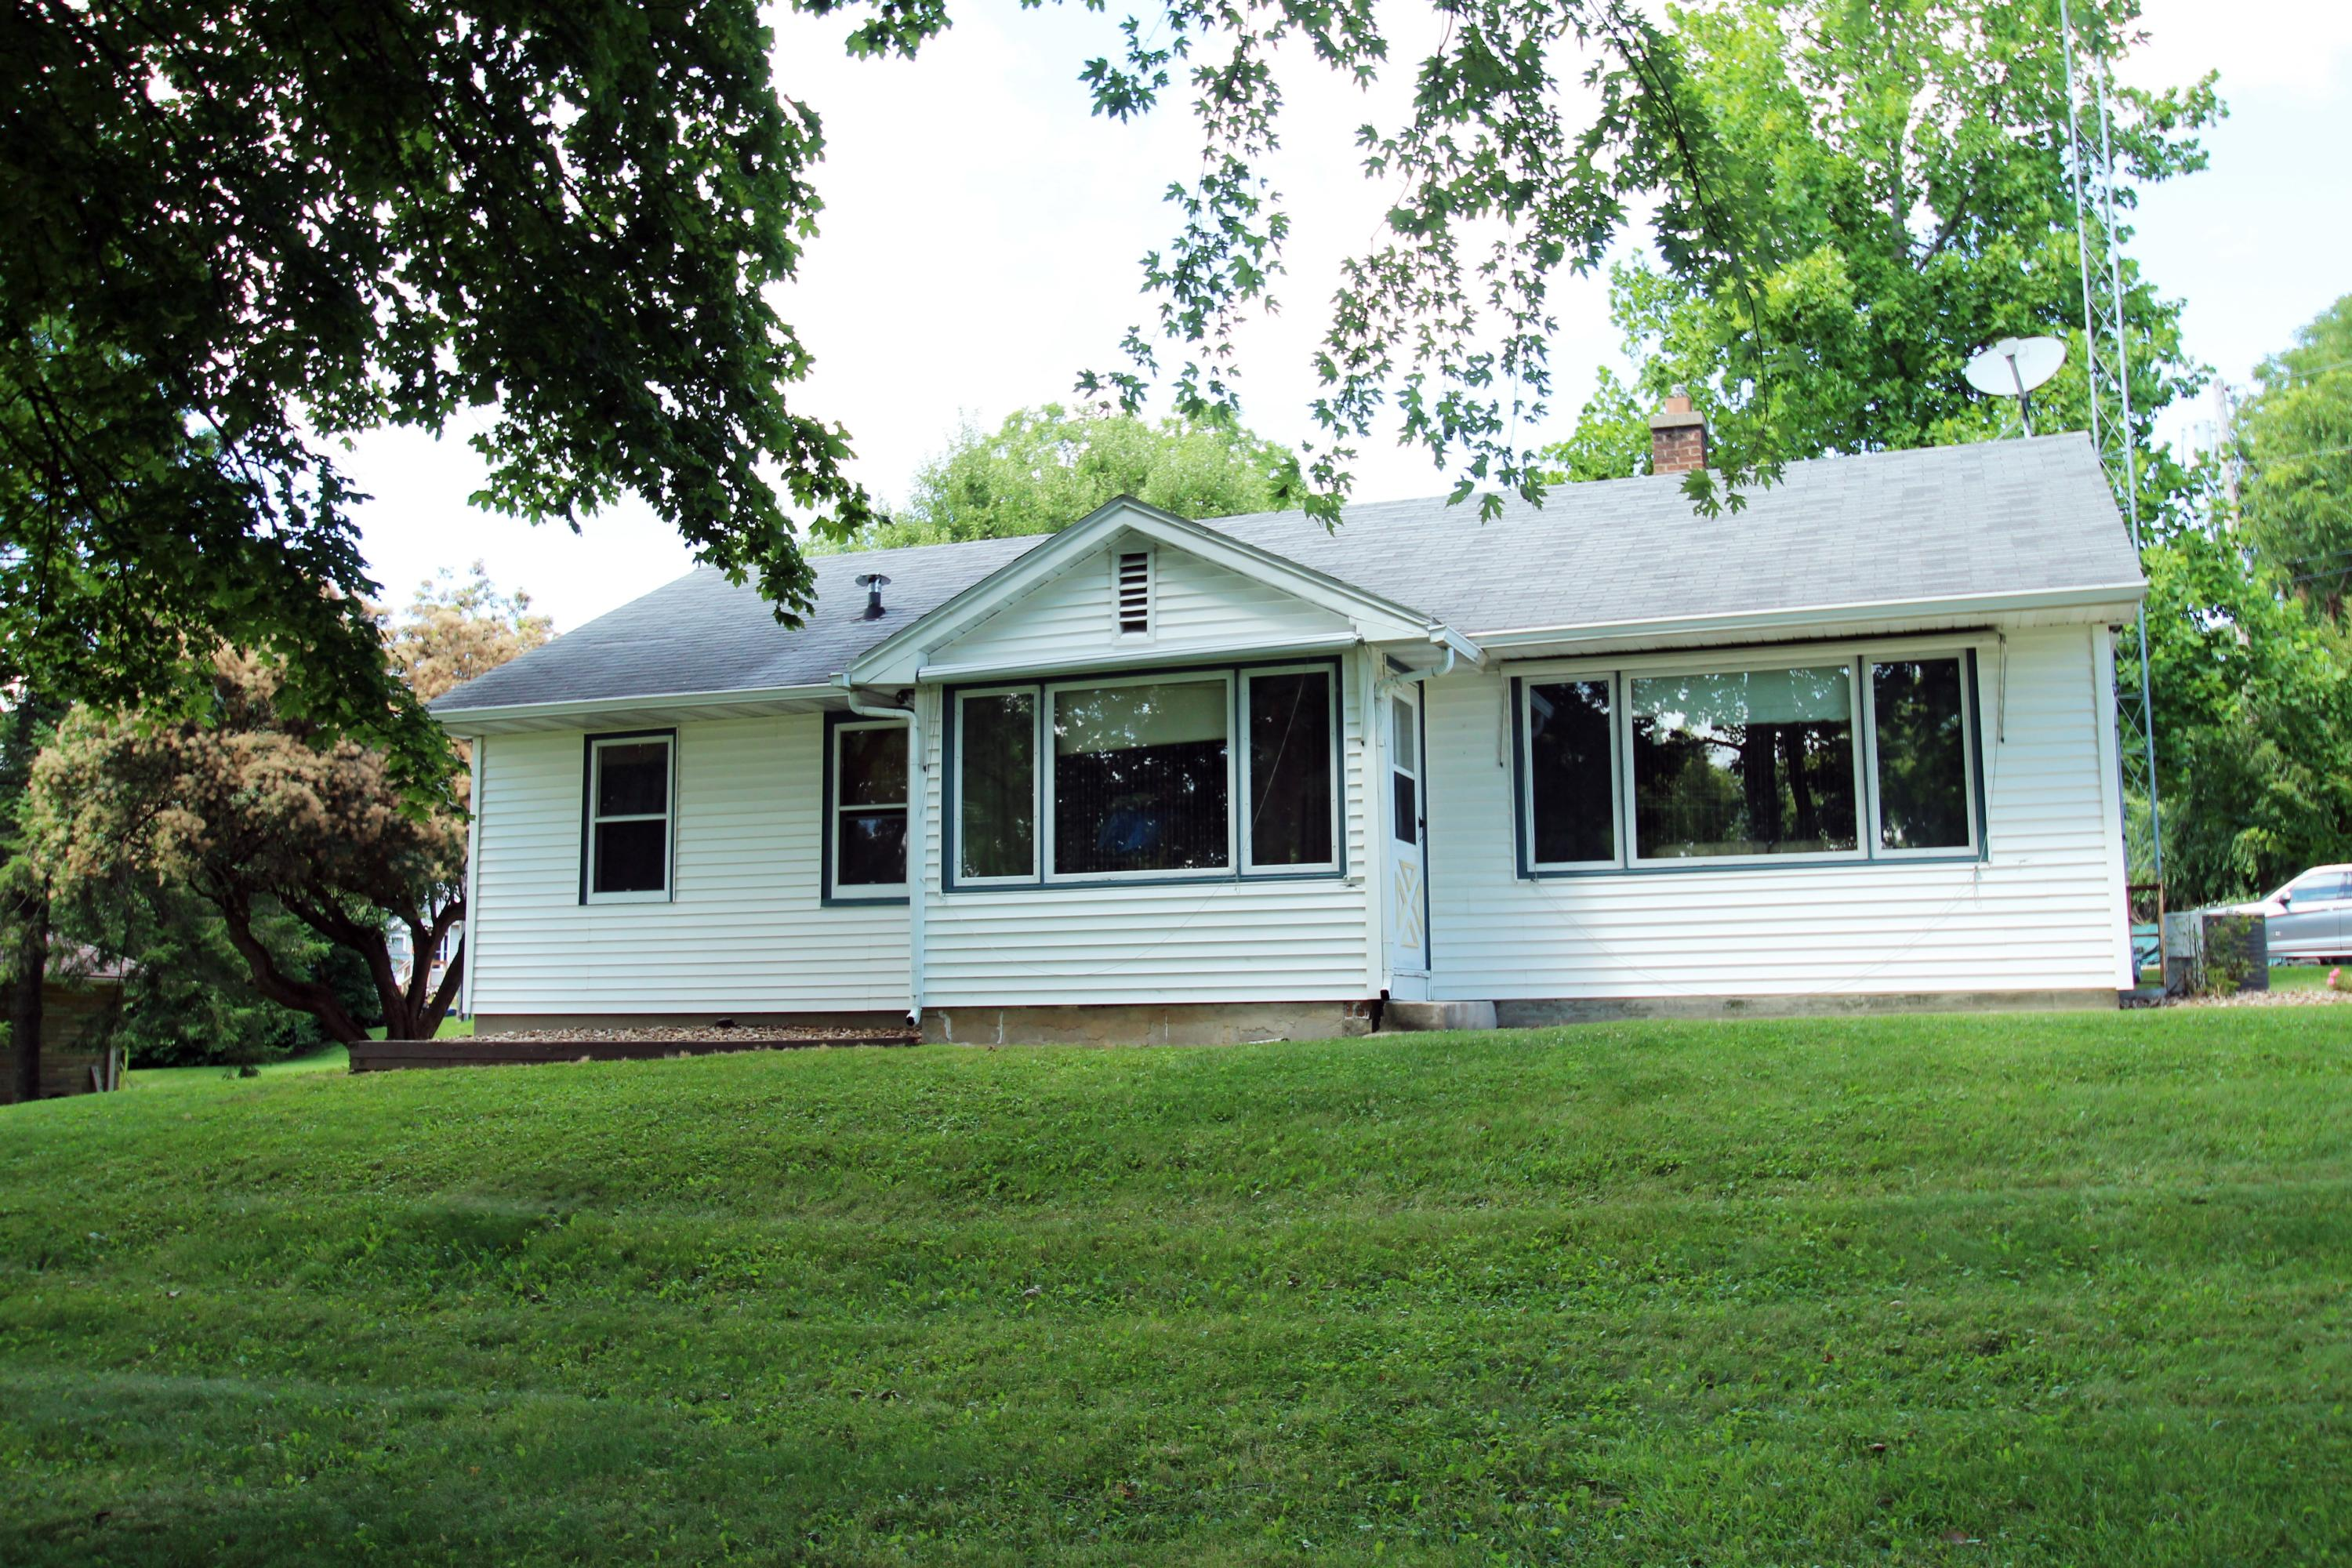 N6959 Lake View Rd, Lake Mills, Wisconsin 53551, 3 Bedrooms Bedrooms, ,1 BathroomBathrooms,Single-family,For Sale,Lake View Rd,1703024